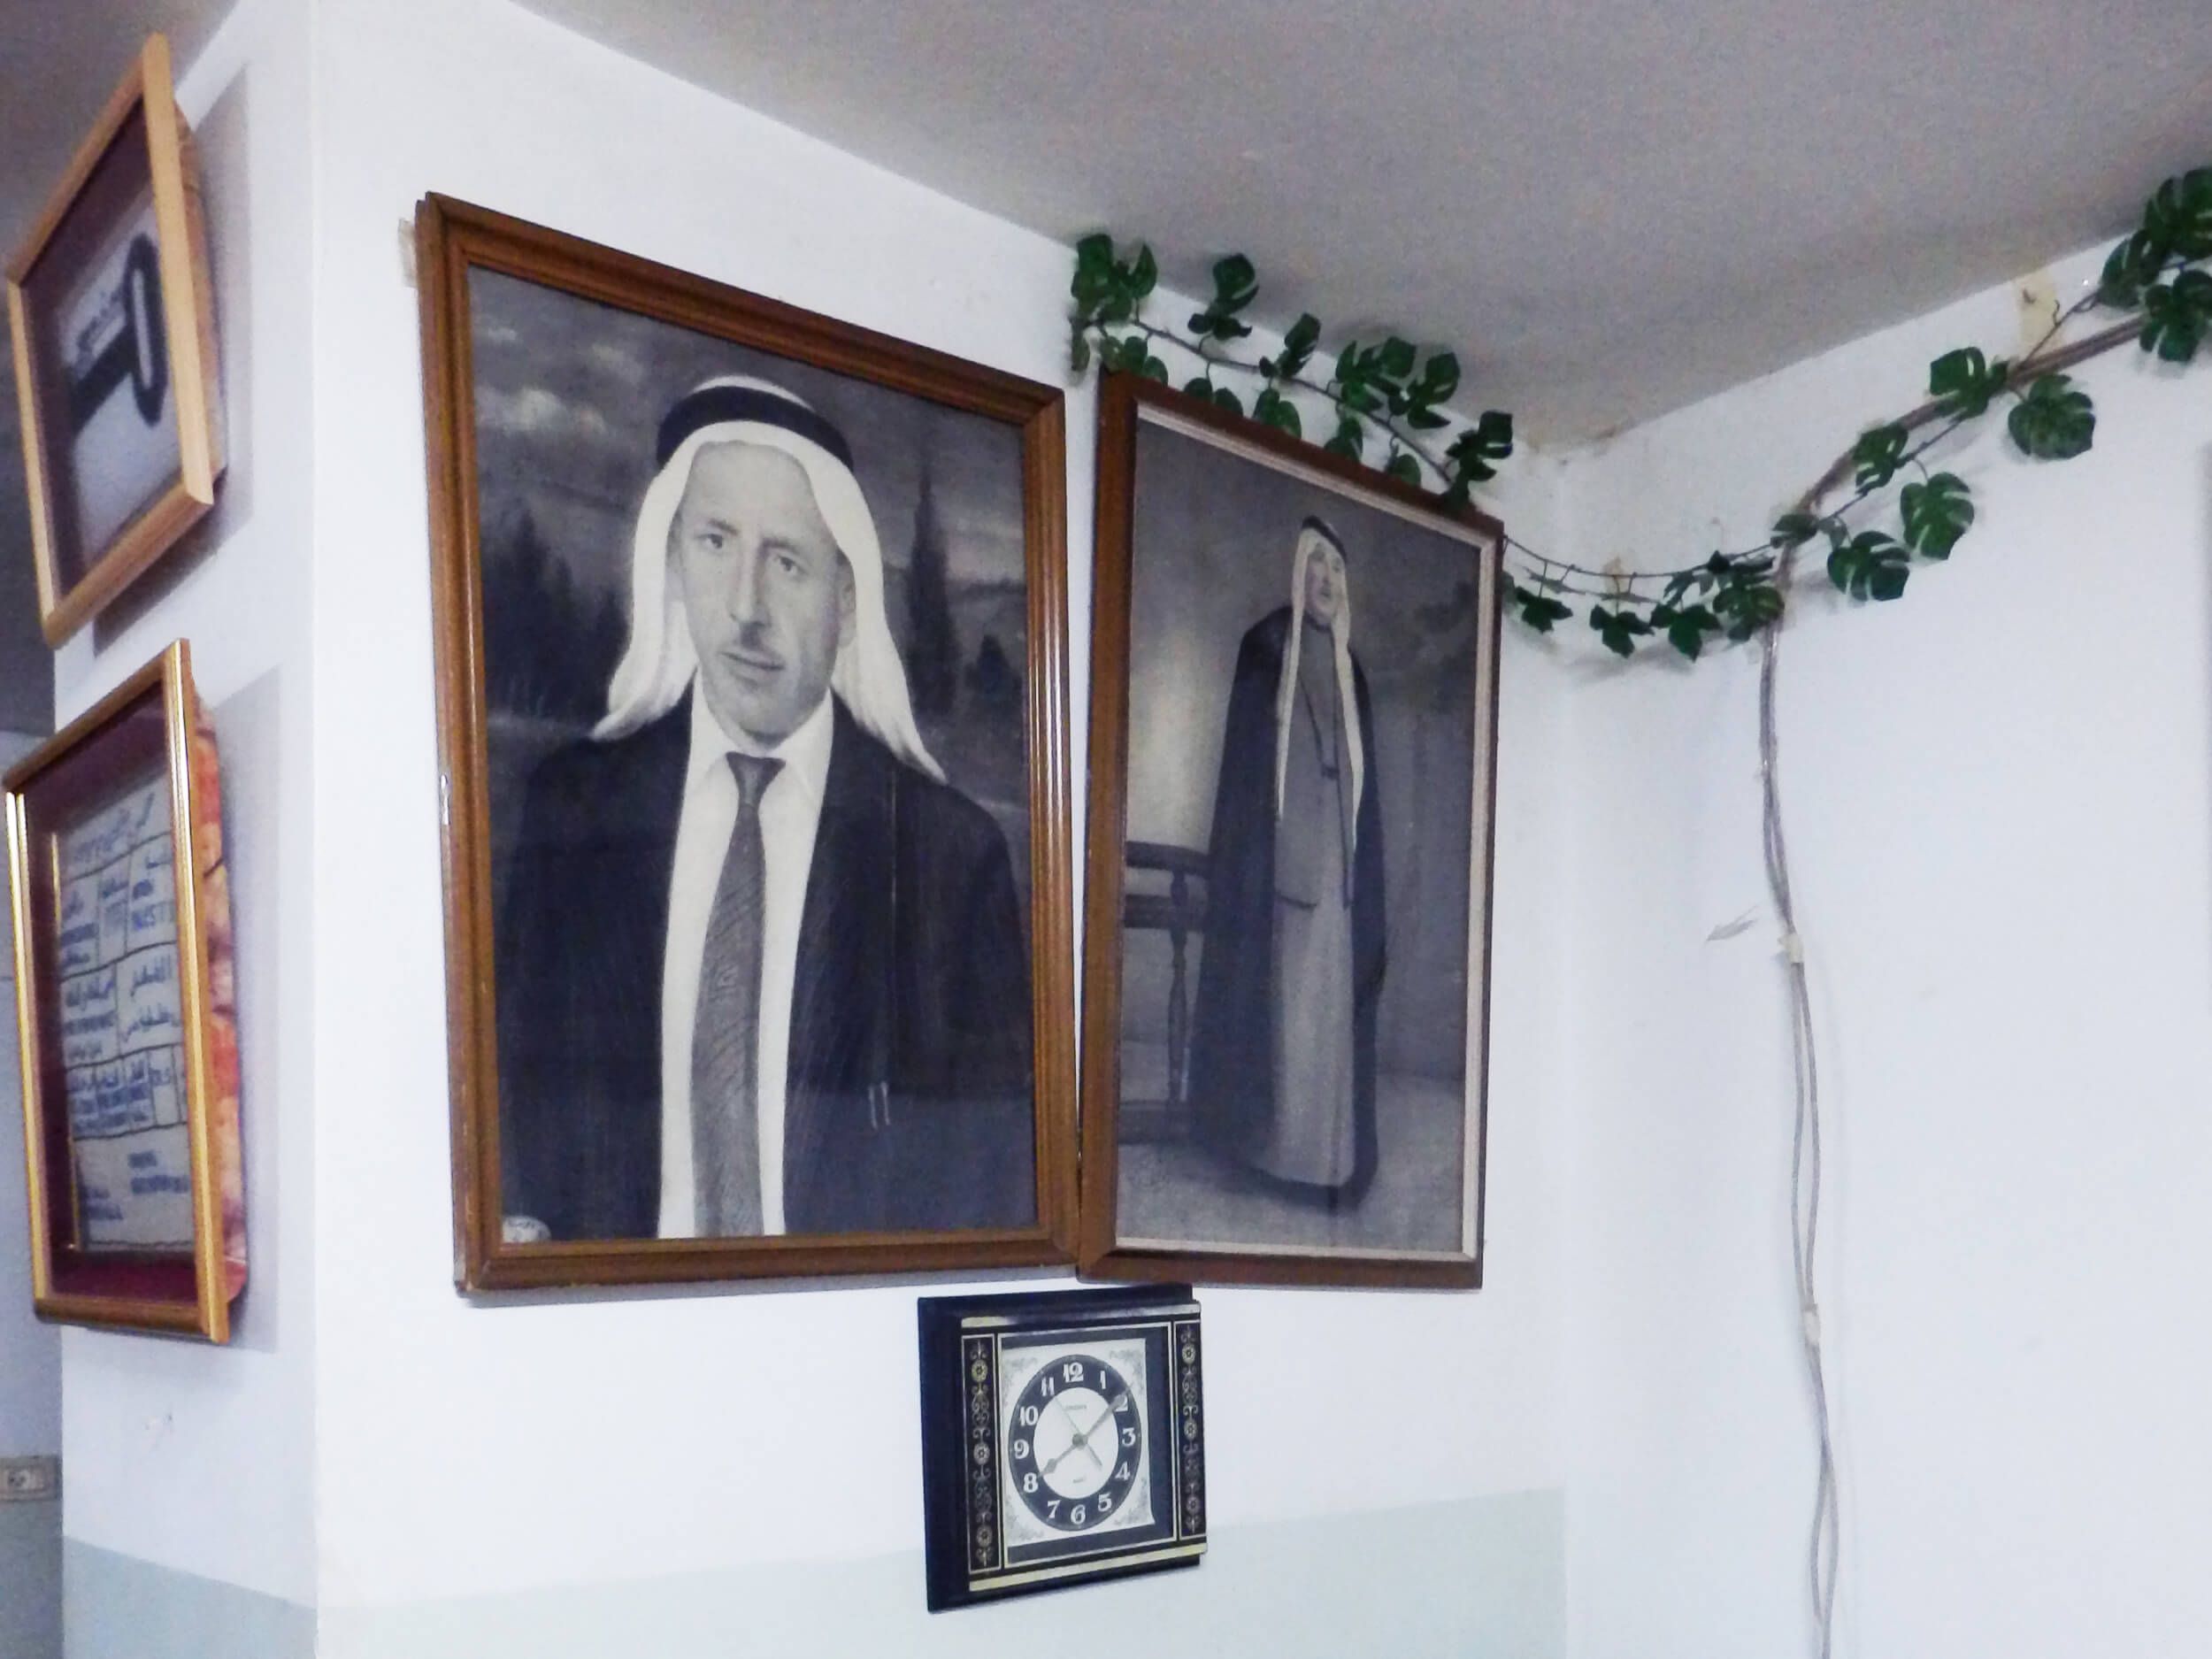 Pictures of the al-'Aza family hang inside Echlas' home in the camp. (Photo: Jacob Burns)